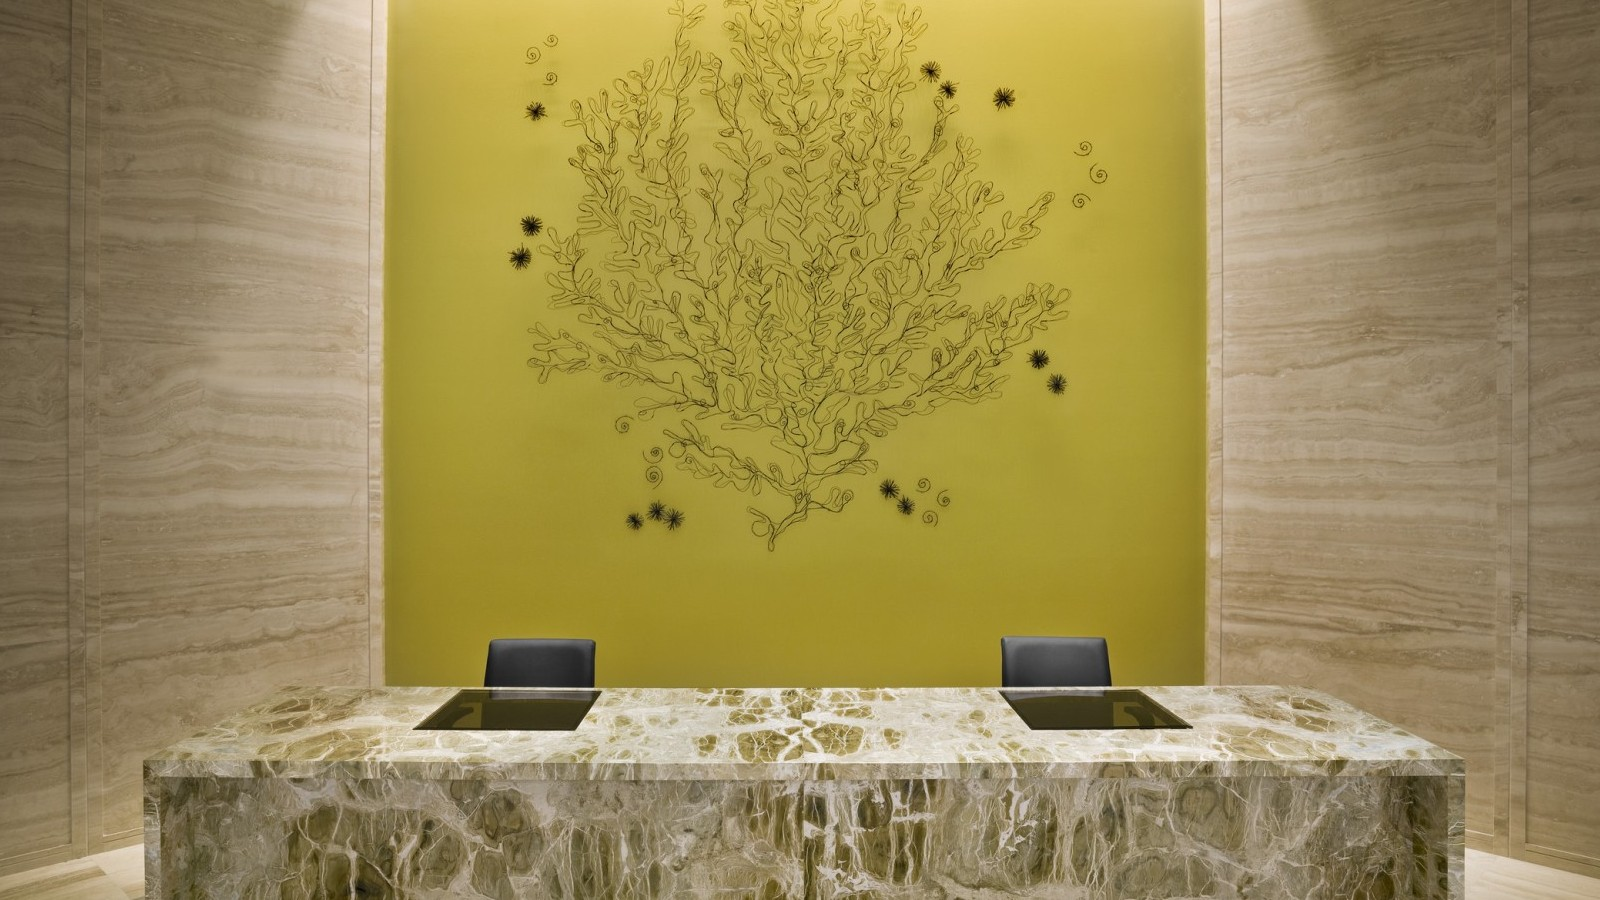 Remede Spa - The St. Regis Bal Harbour Resort